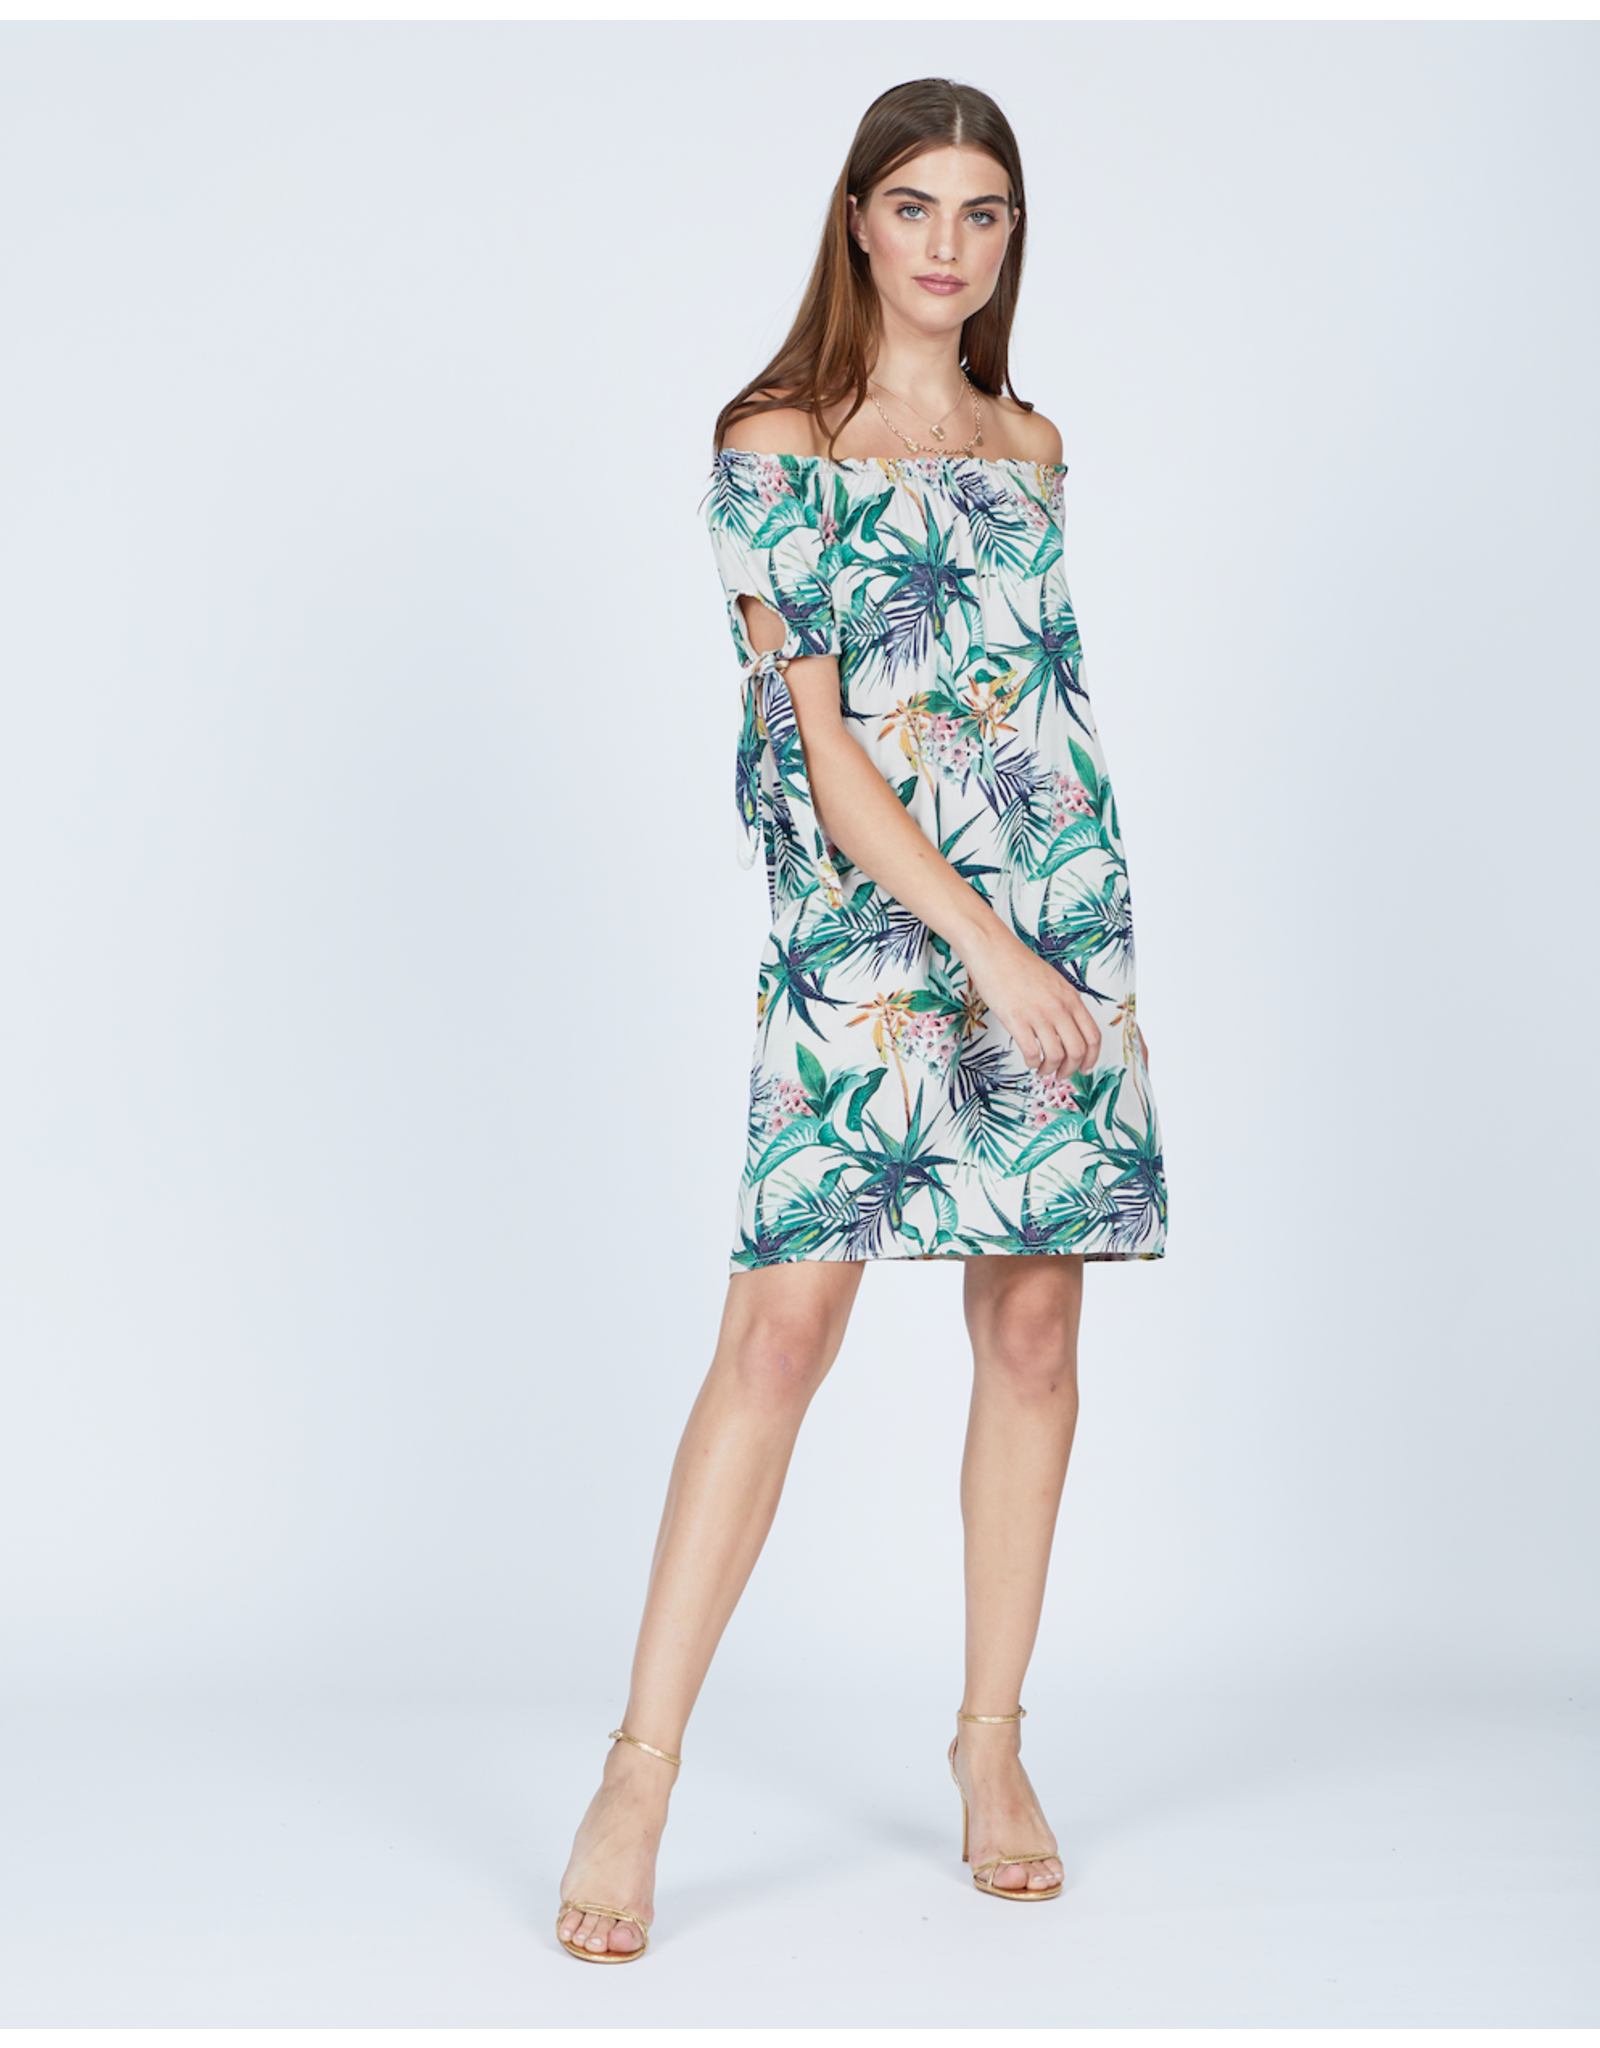 Pistache Bamboo Leaf Print Dress - XL ONLY